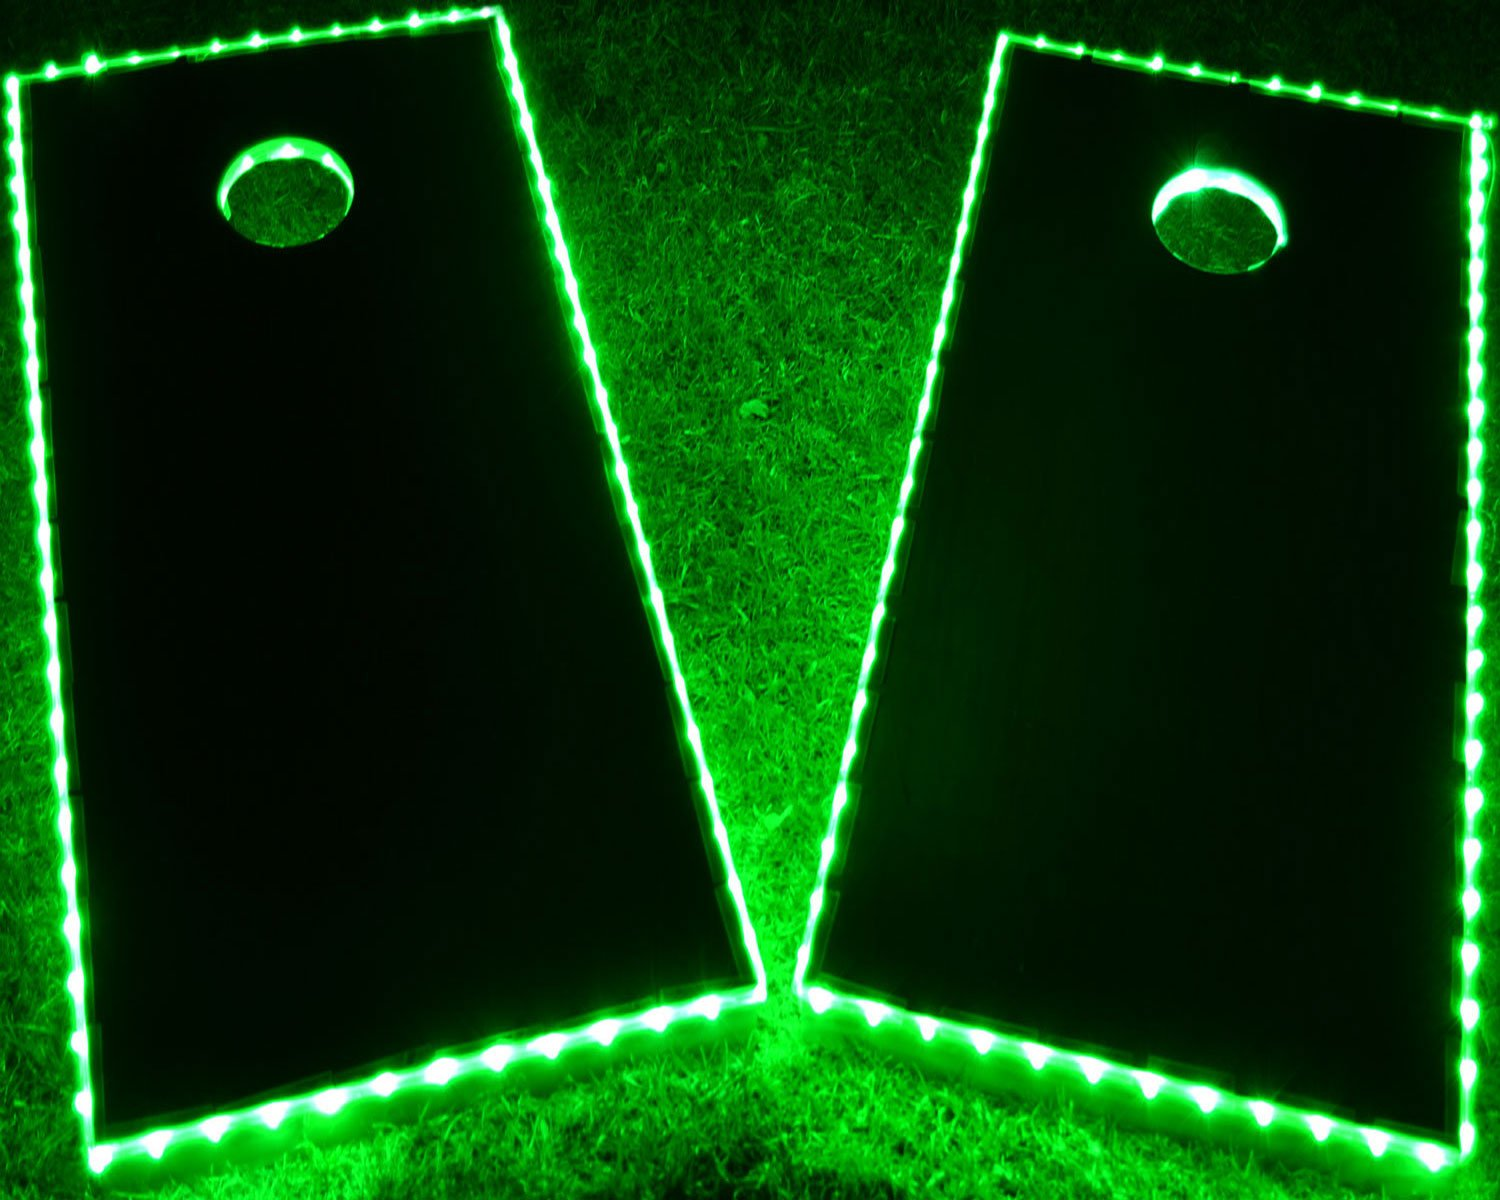 GlowCity LED Cornhole Board Lights - Ultra Bright Lights for Corn Hole and Board, Fits 2 x Boards - Waterproof and Durable Cable Ideal for Family Outdoor Games or Backyard Glow in the Dark Fun (Green)